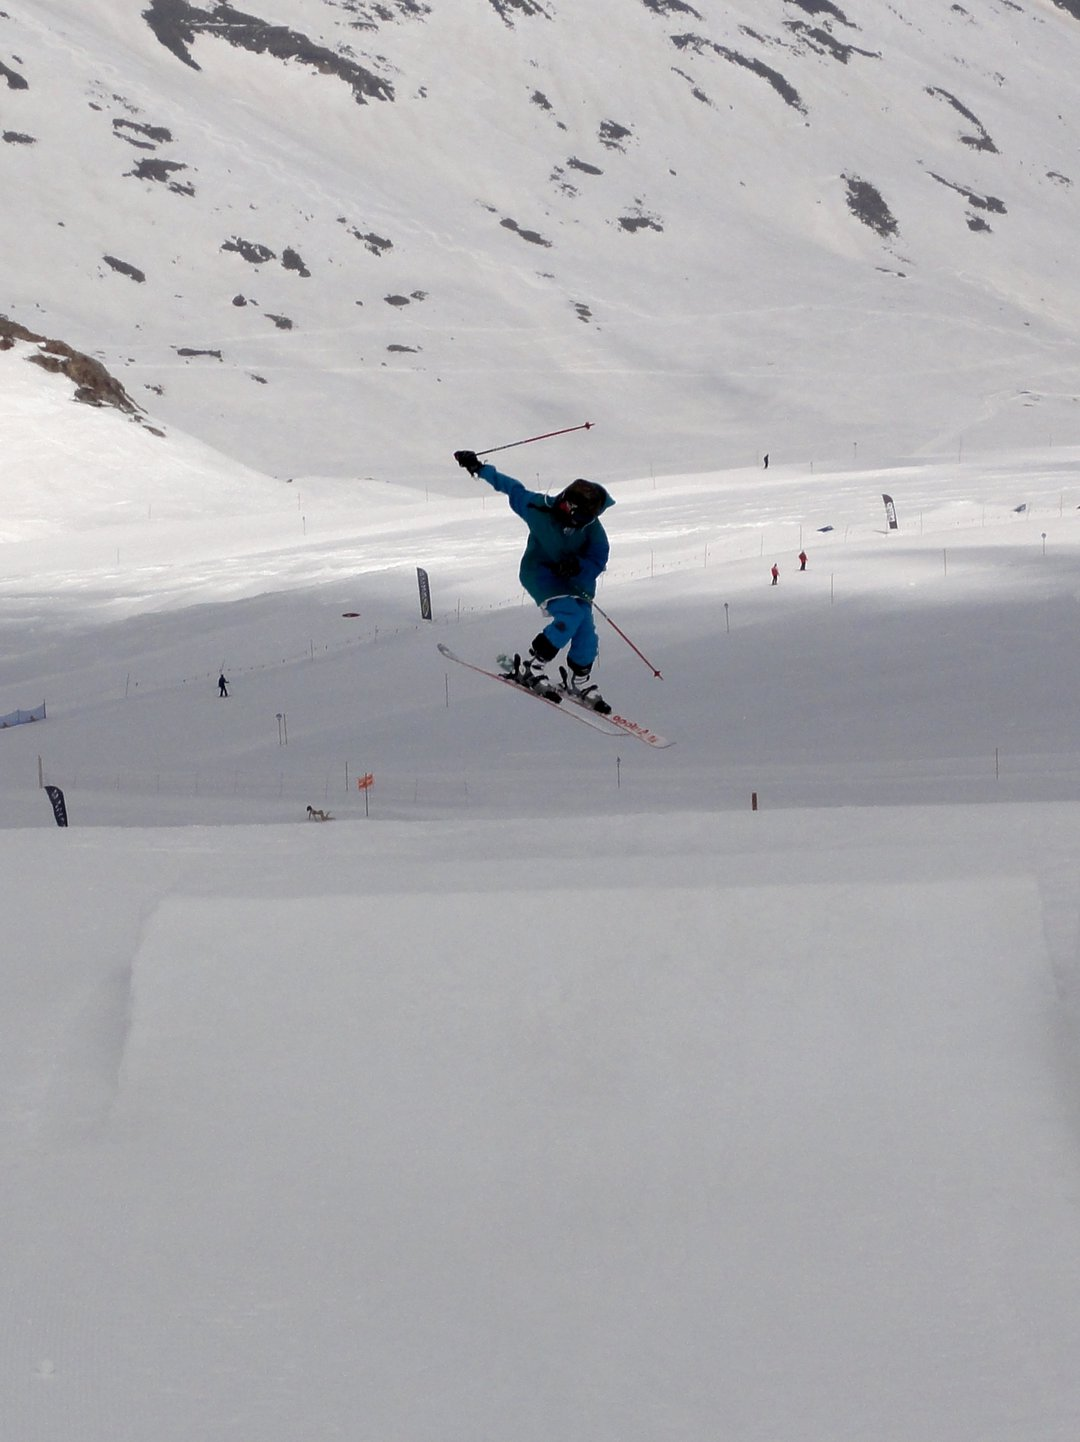 Hitting some jumps